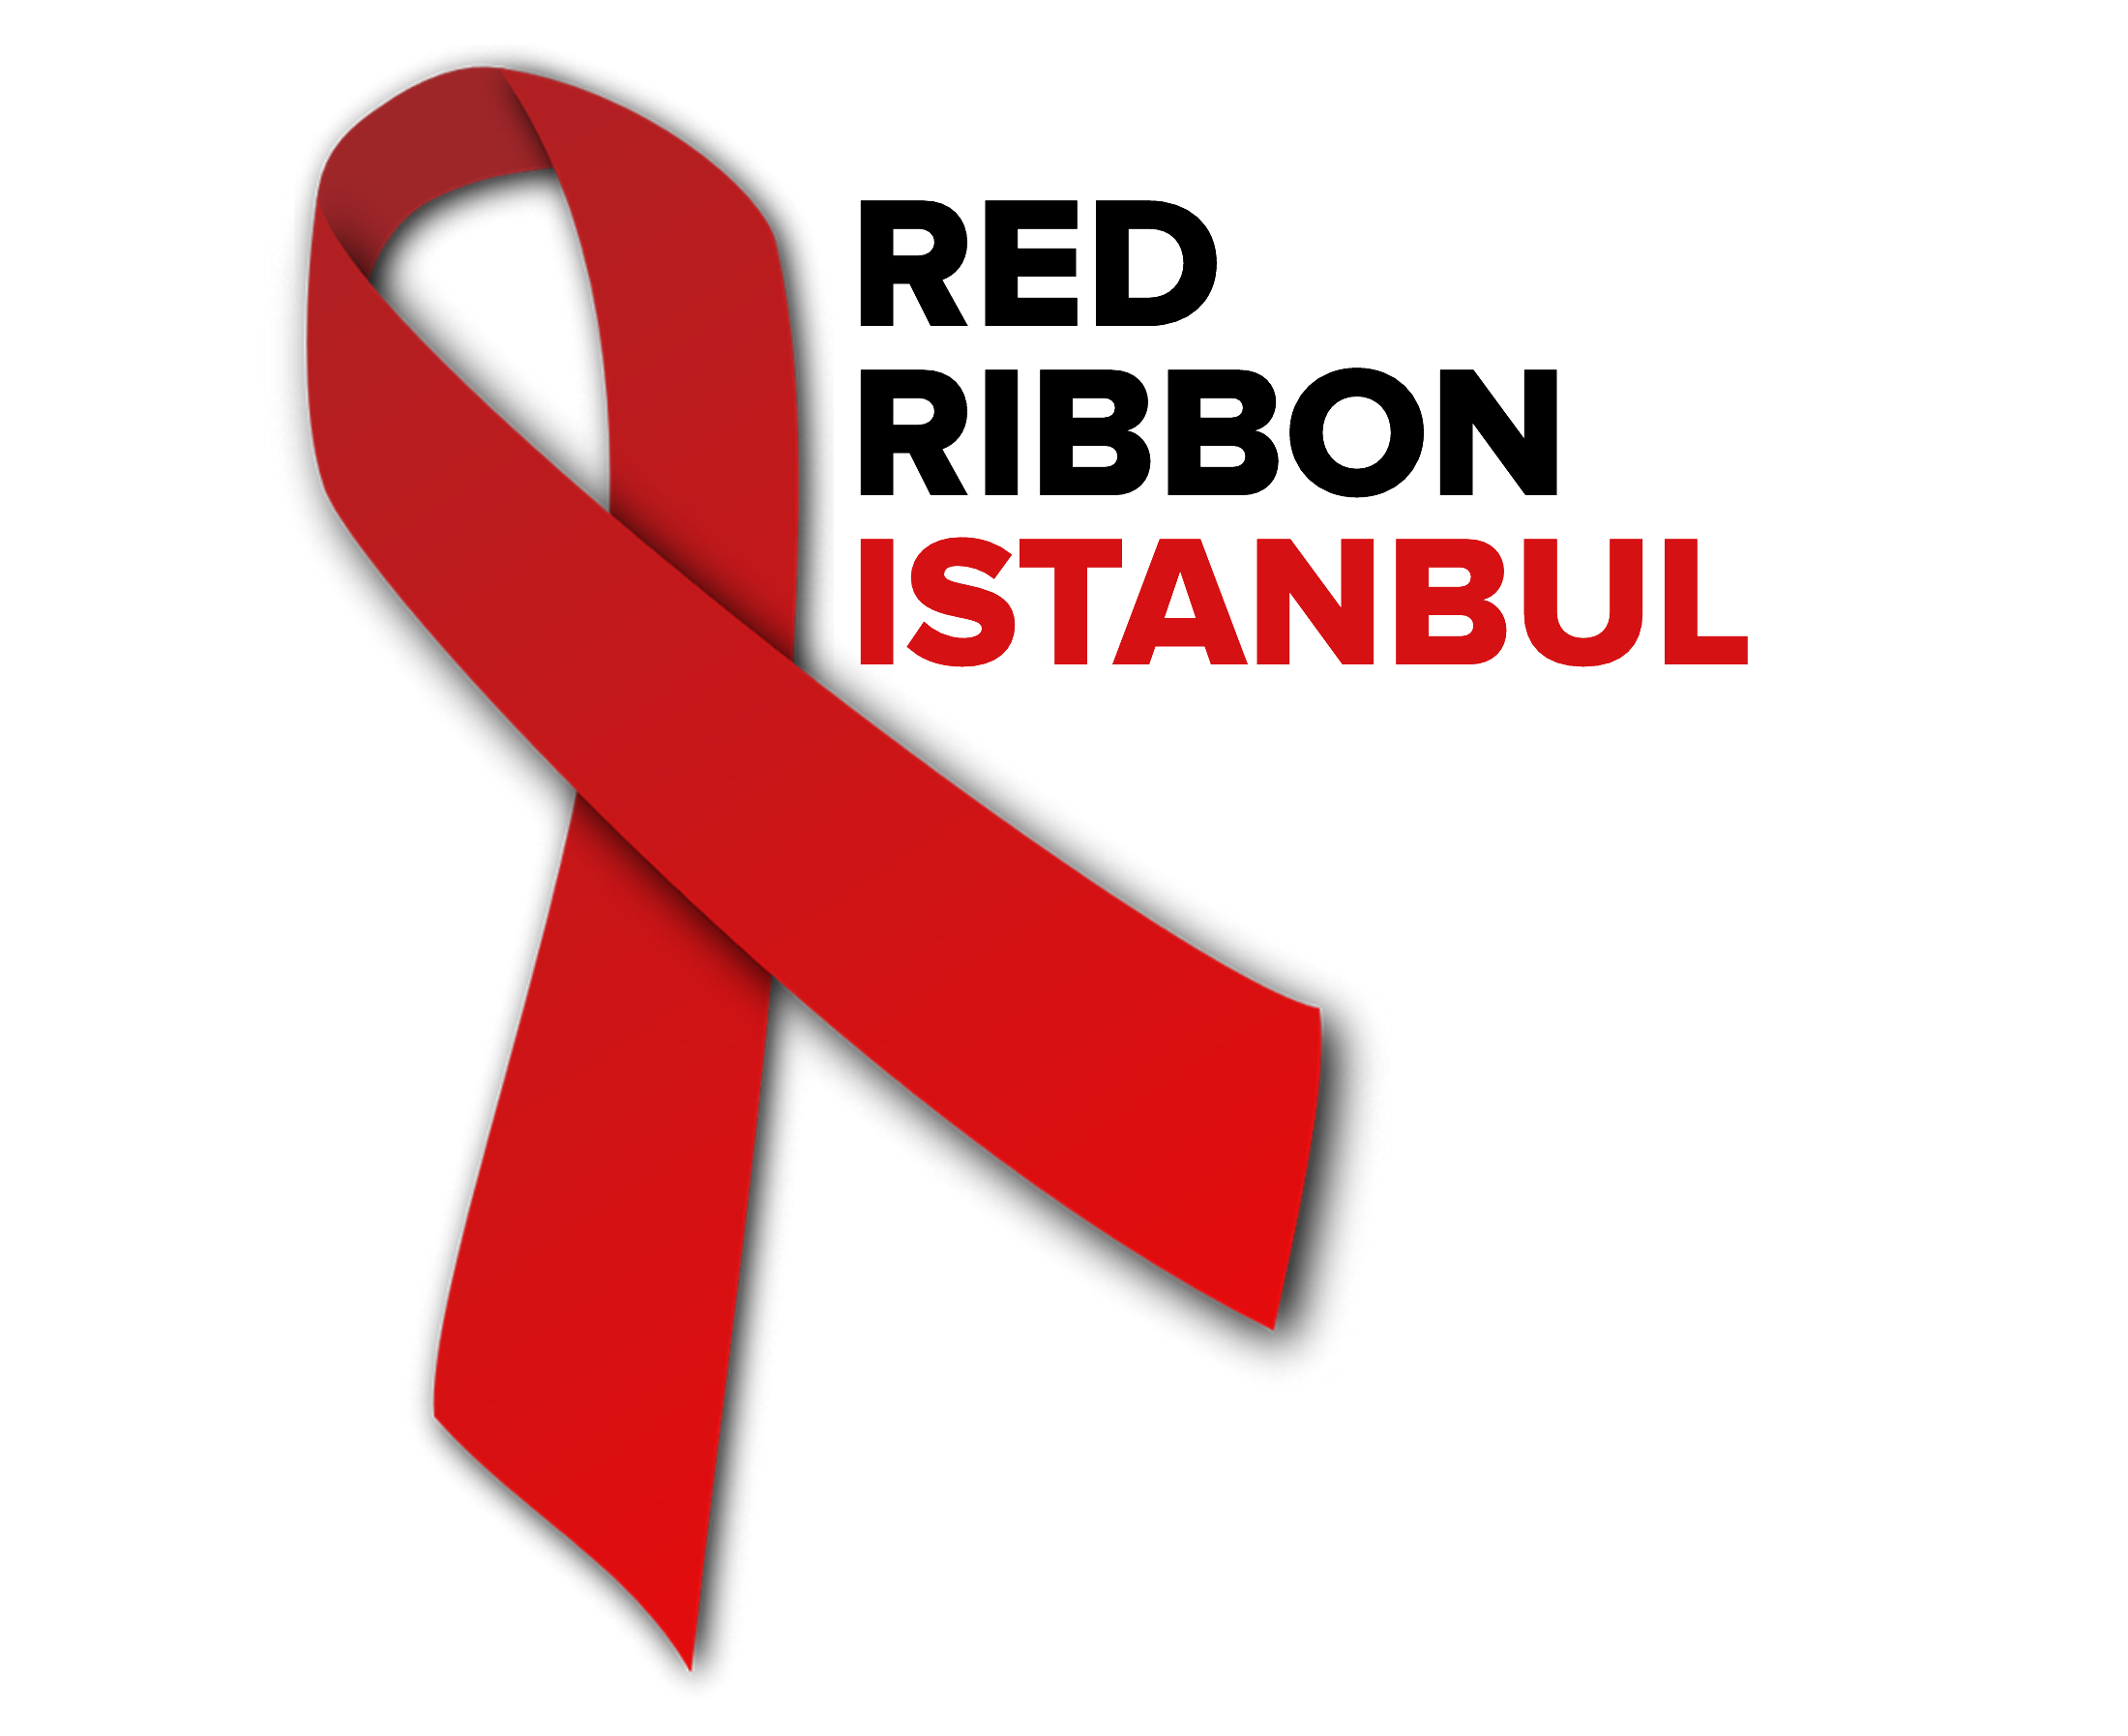 Red Ribbon Istanbul.png